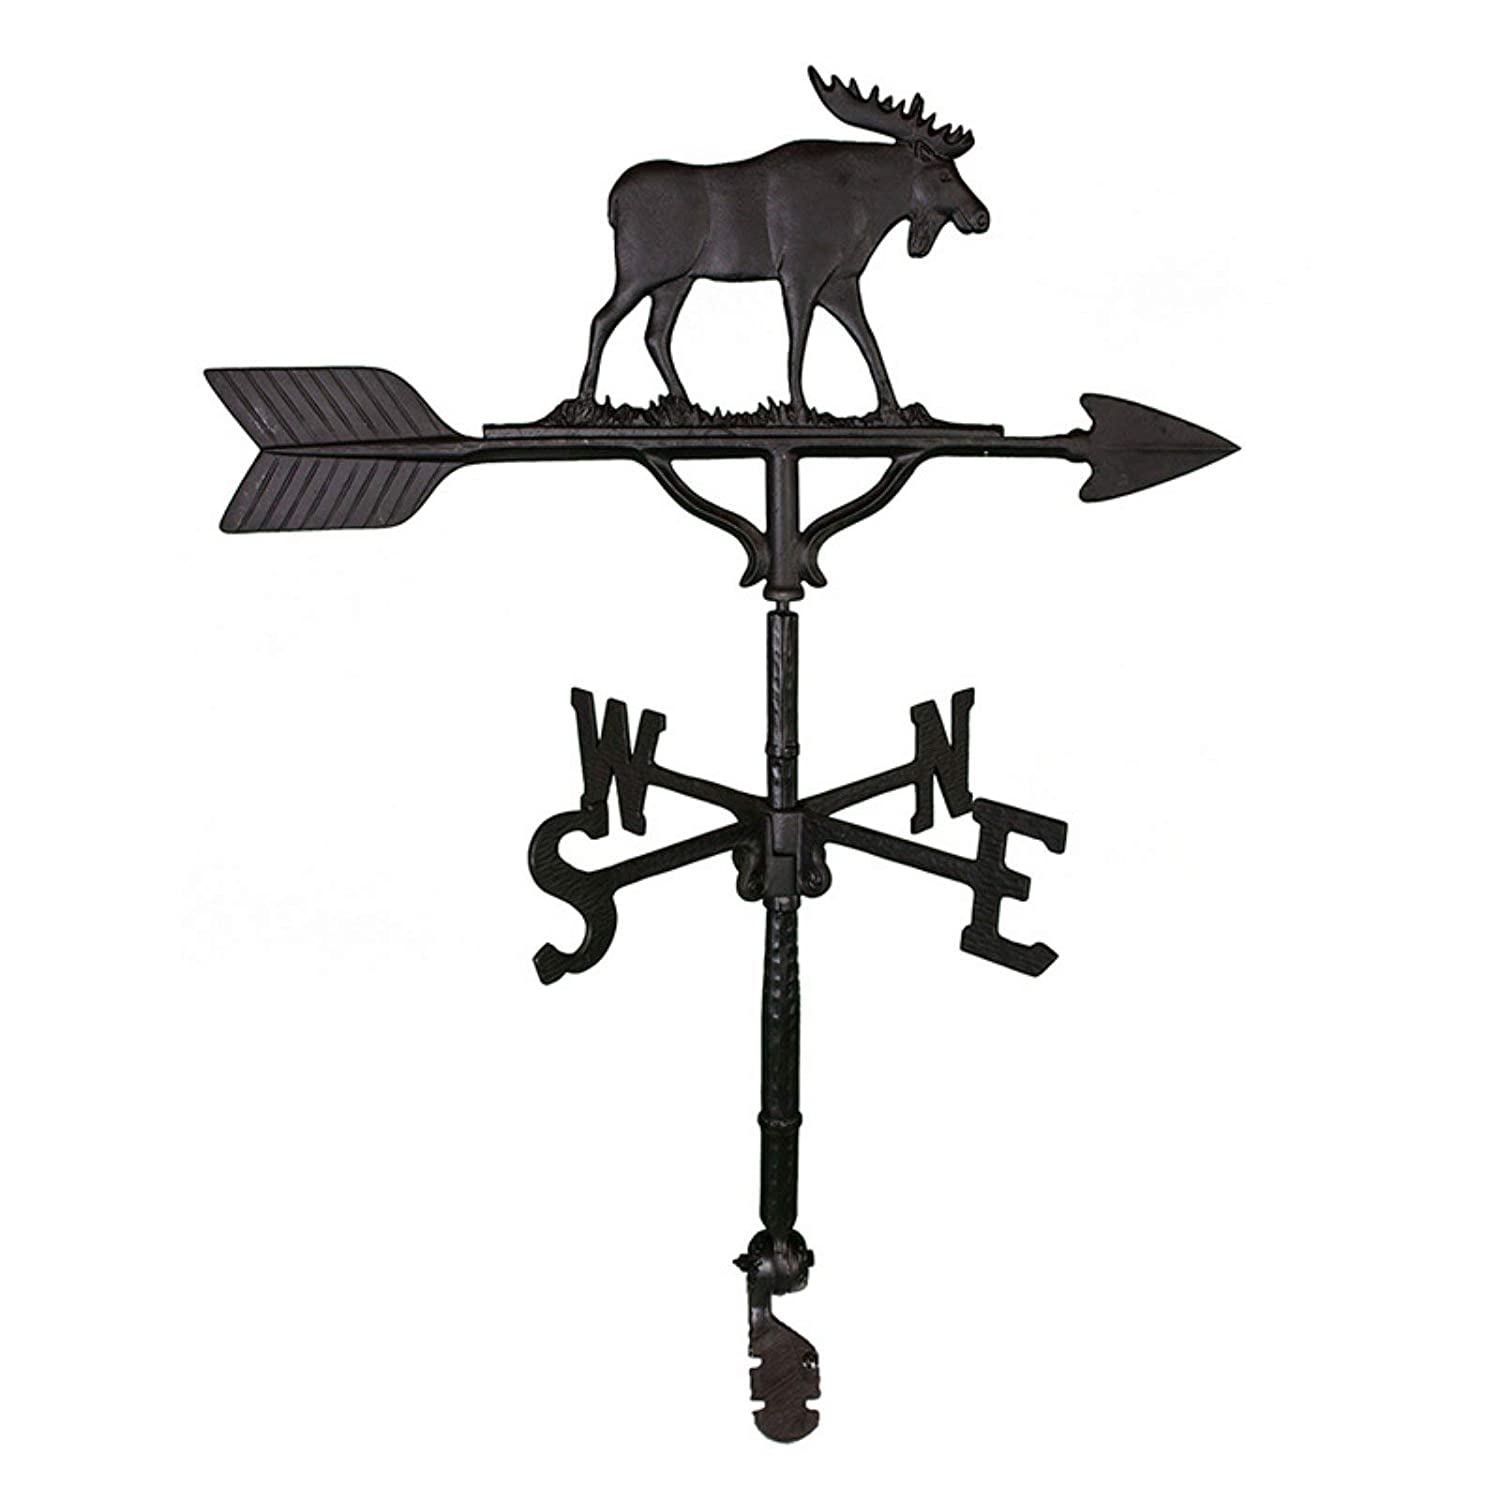 Montague Metal Products 32-Inch Weathervane with Satin Black Moose Ornament WV-246-SB